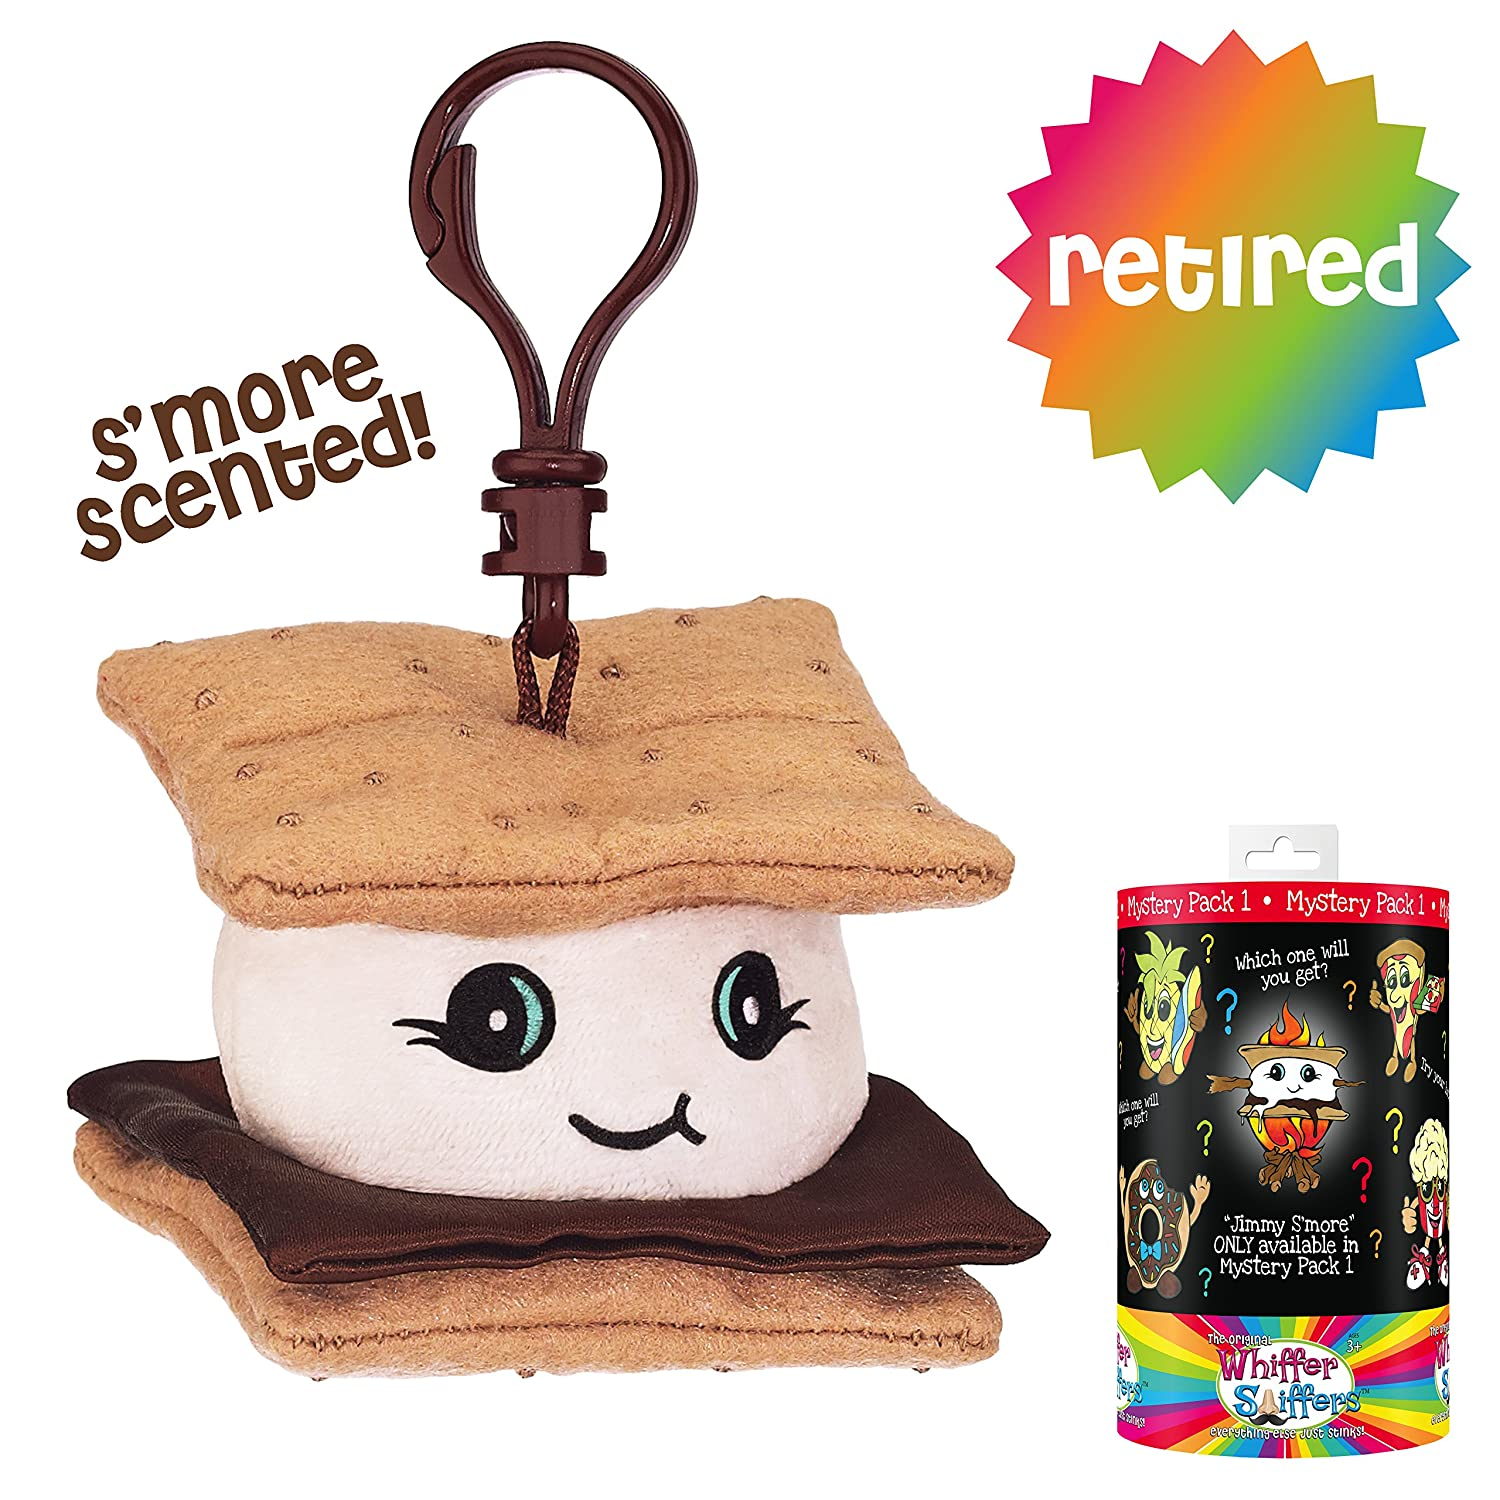 Whiffer Sniffers Mystery by Whiffer Sniffers